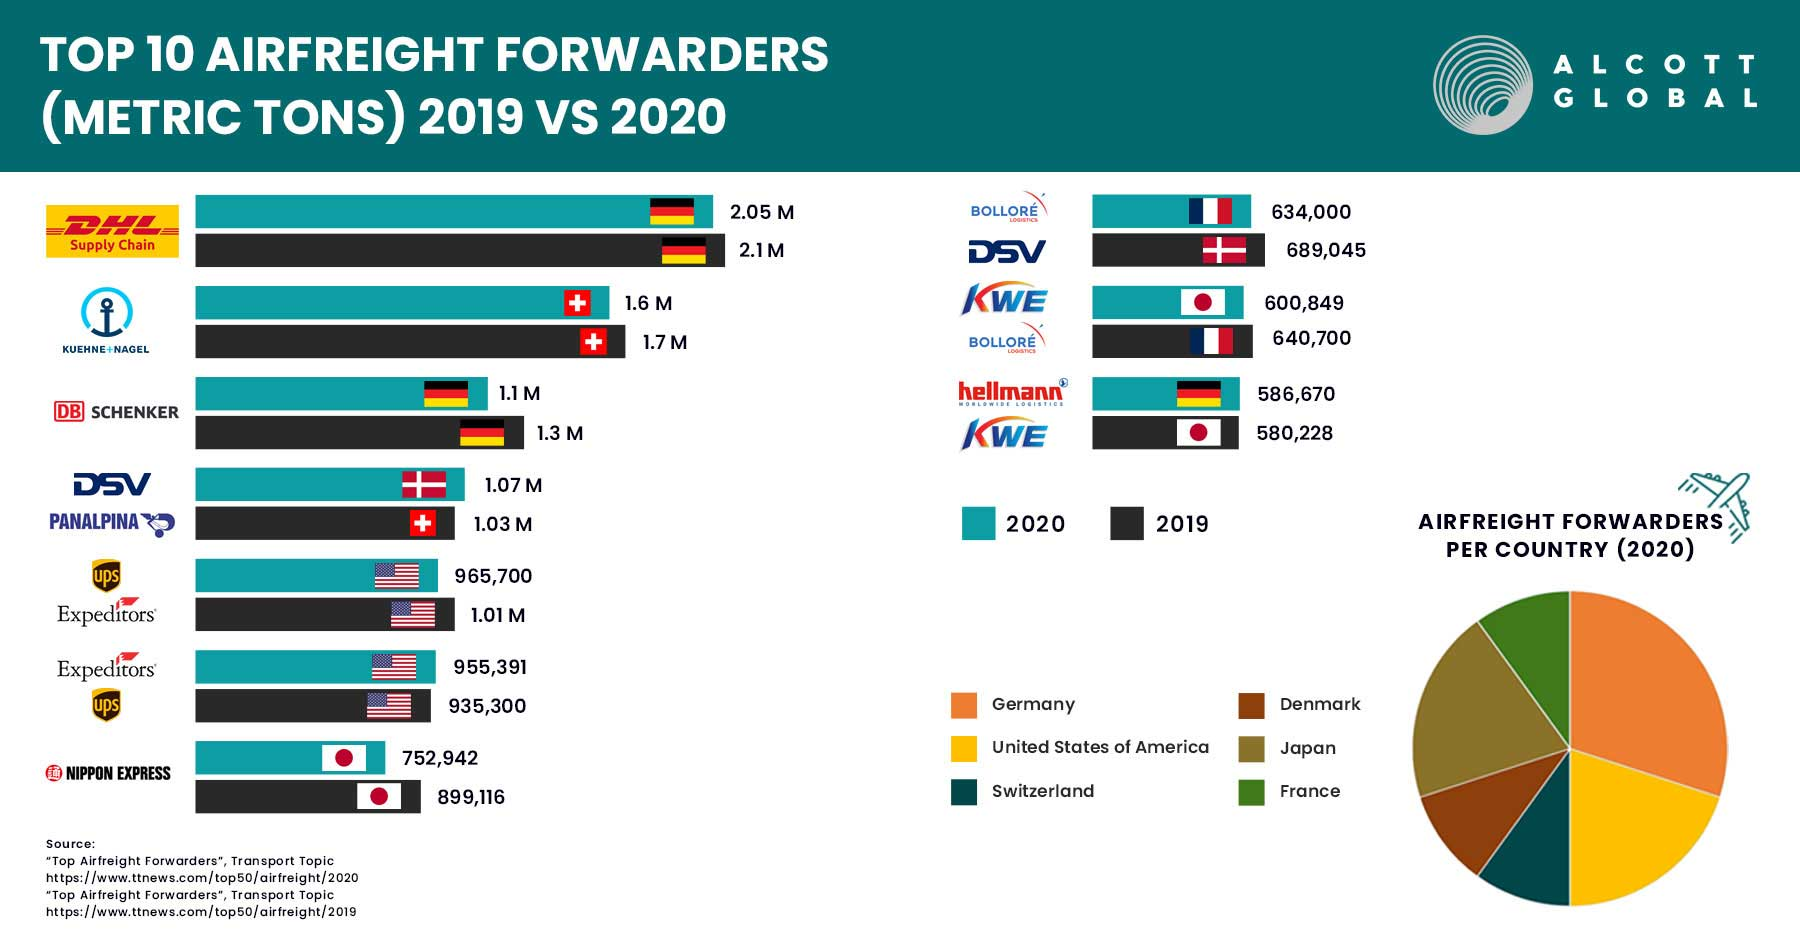 Top 10 Airfreight Forwarders - 2020 vs. 2019 Featured Image